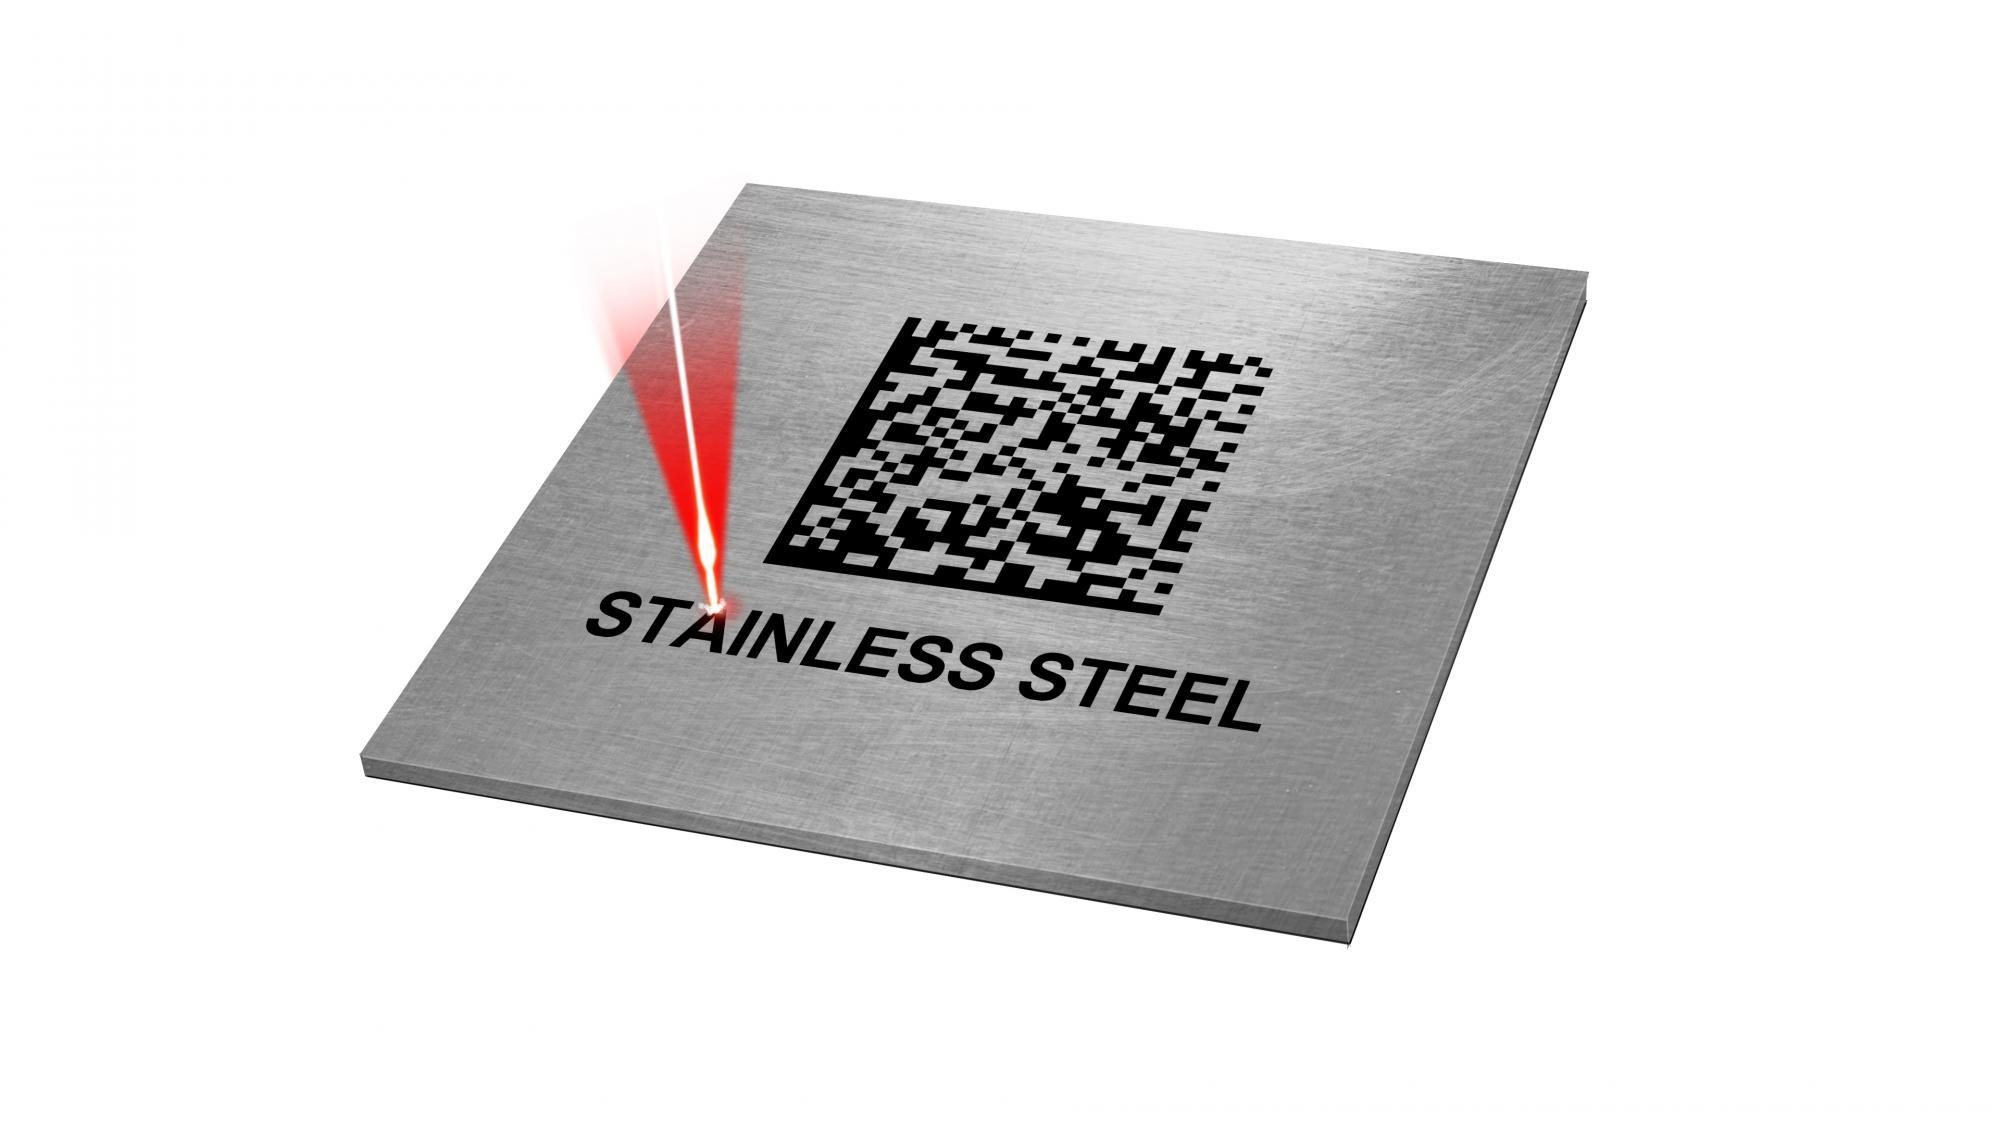 Laser Marking on Stainless Steel